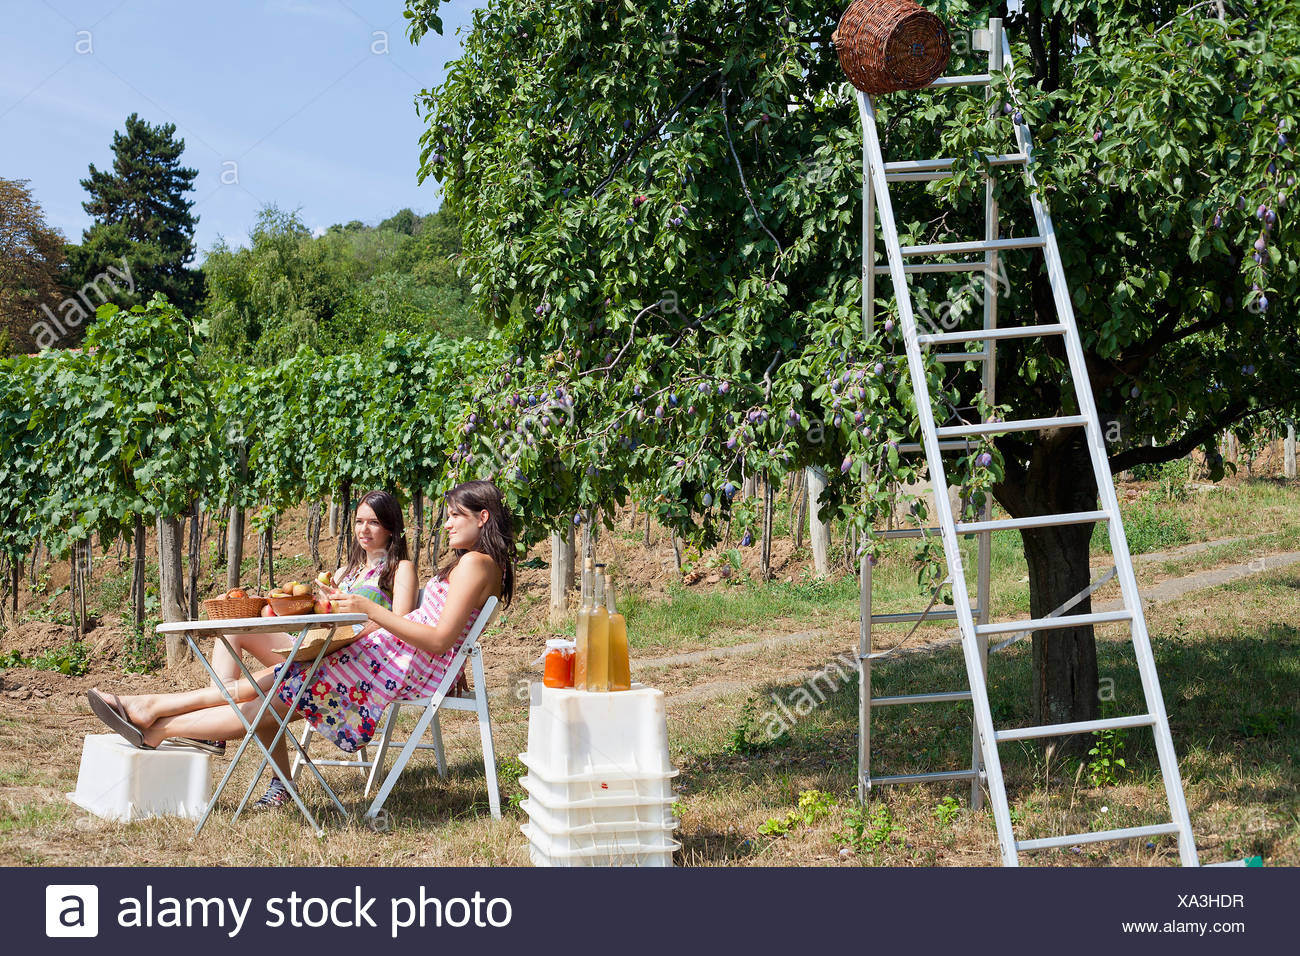 Women picnicking in orchard - Stock Image